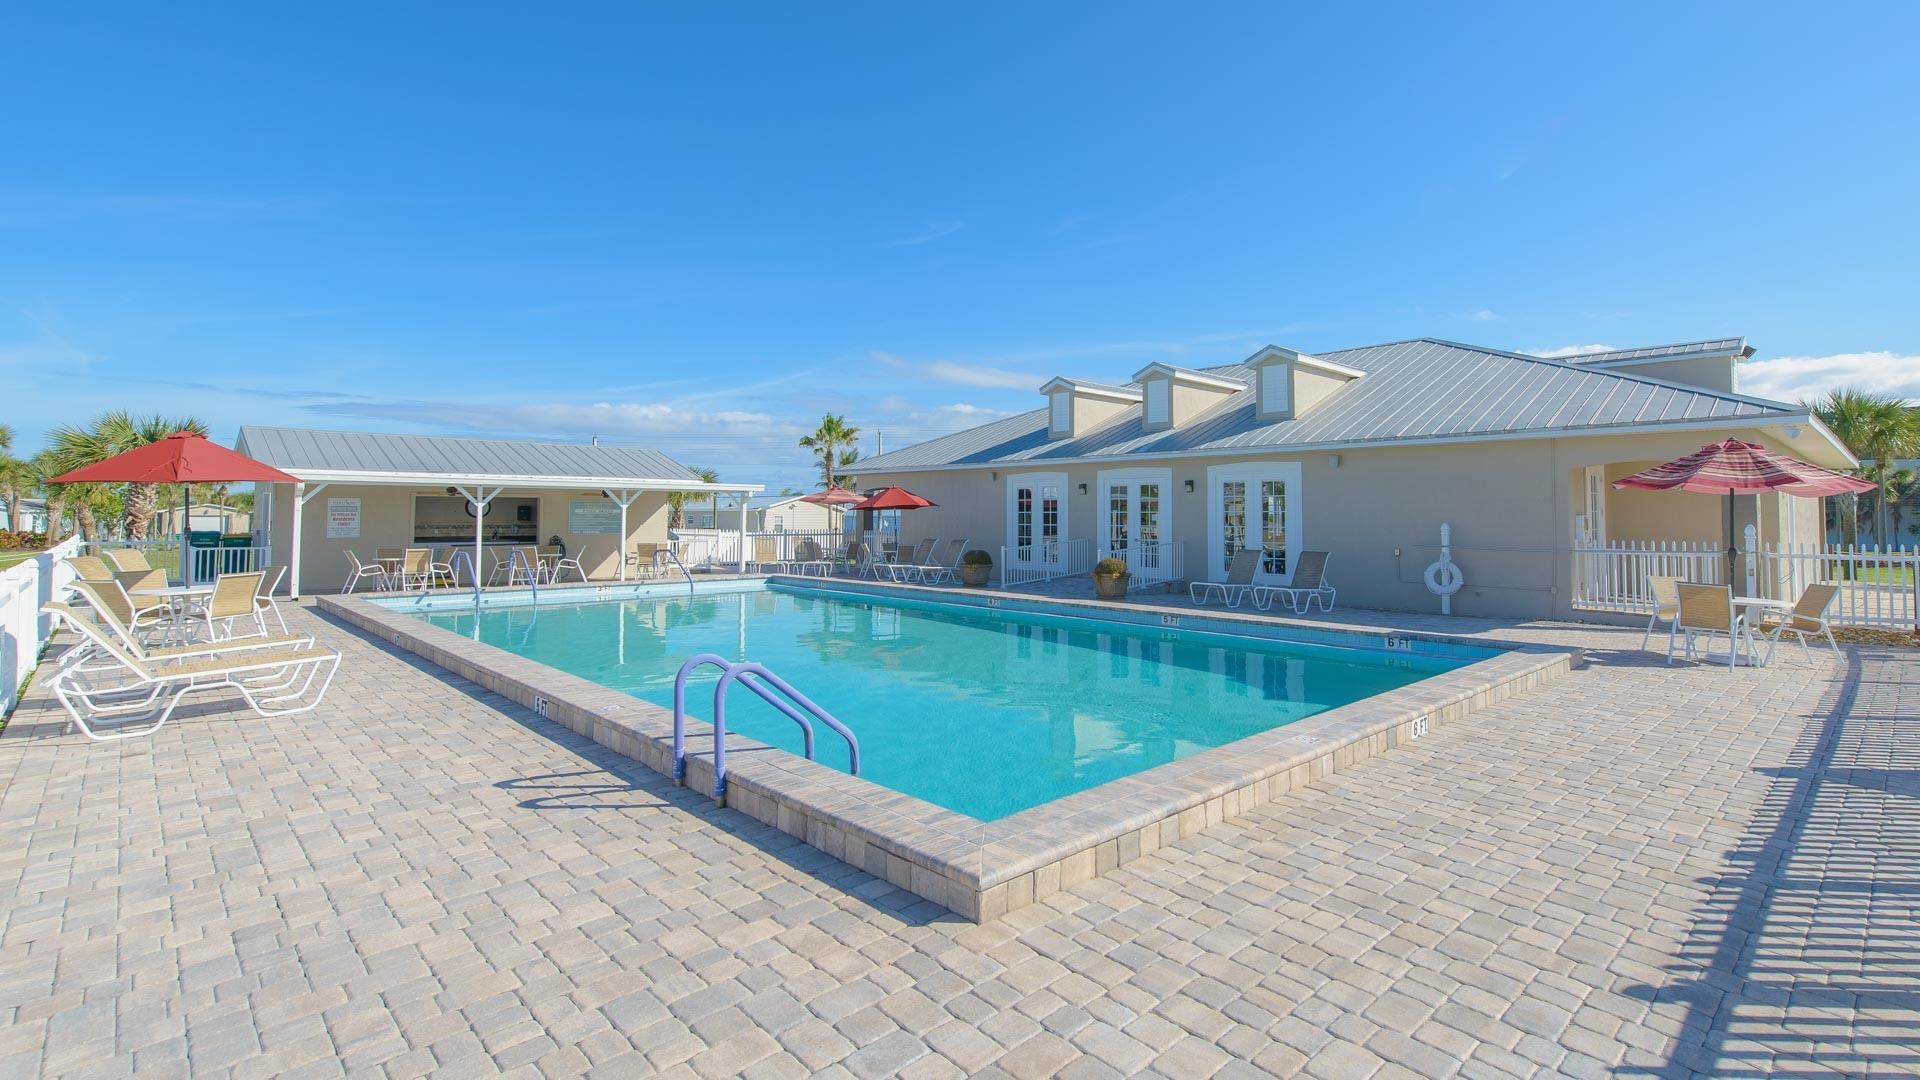 Pelican Bay 55+ Manufactured Homes Community Swimming Pool in Micco, FL